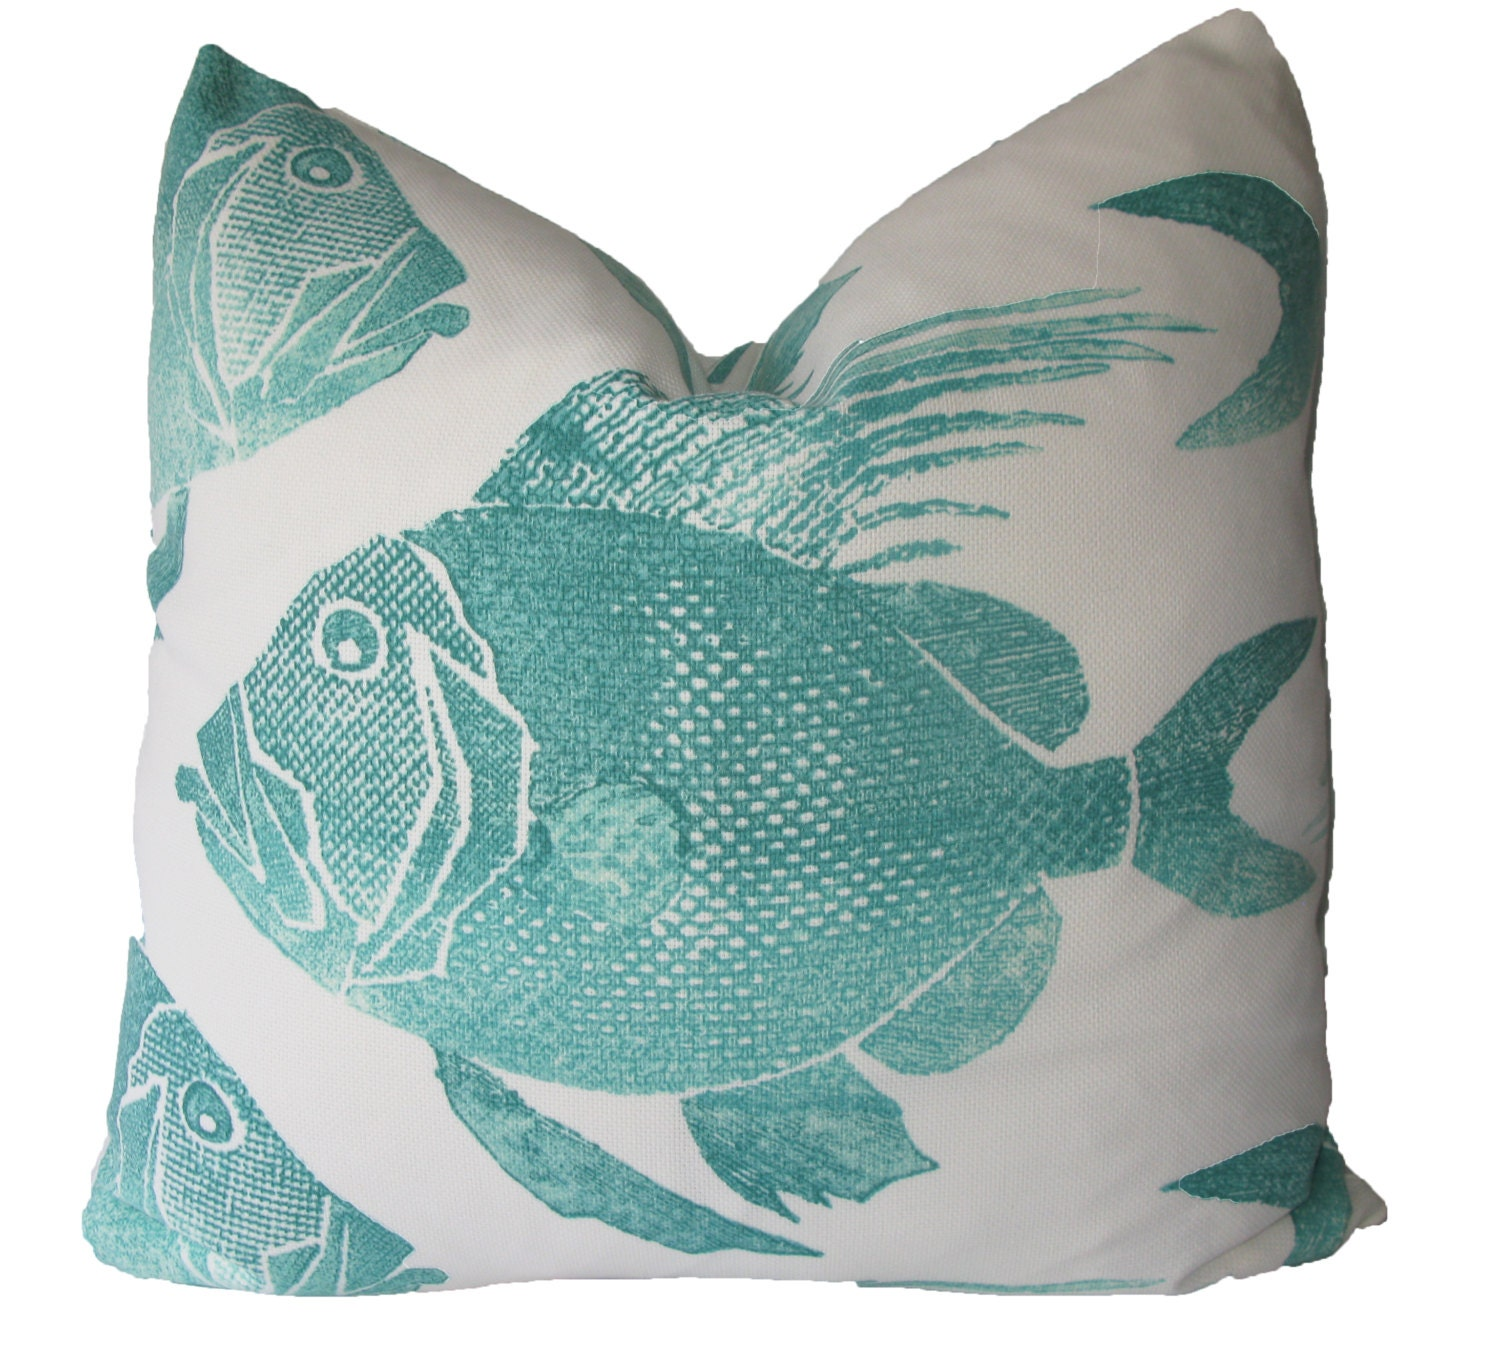 Decorative Indoor Outdoor Fish Pillow Cover 18x18 20x20